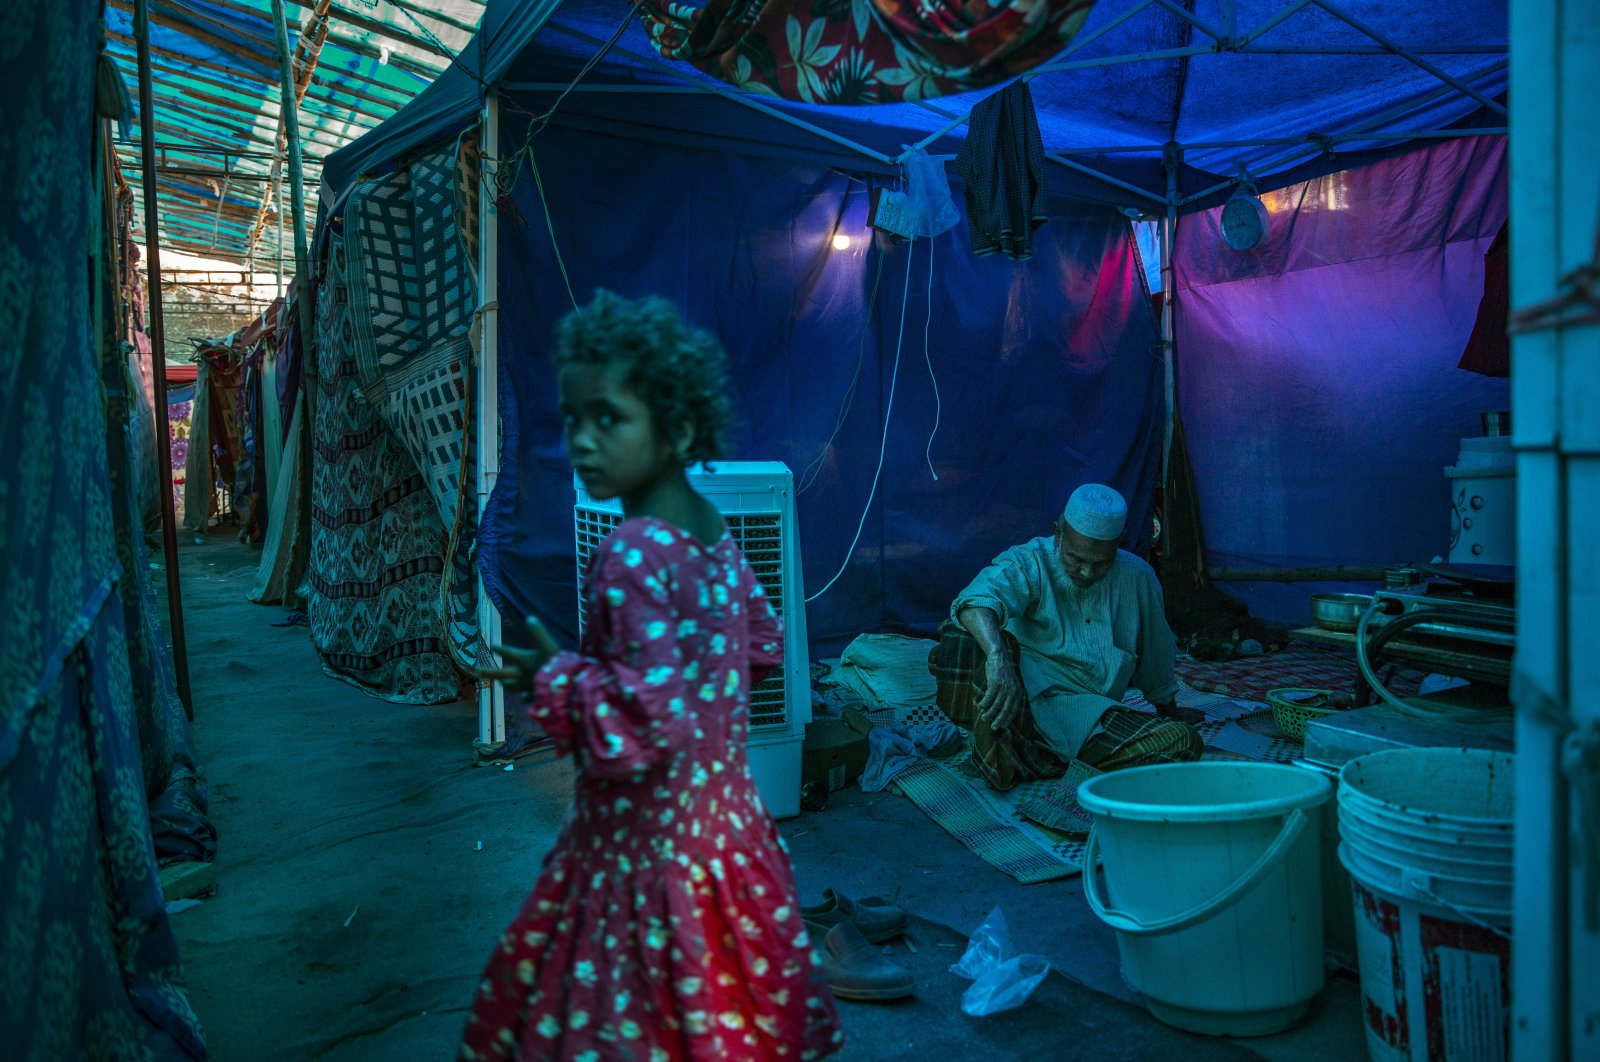 A young Rohingya refugee girl walks past an elderly man sitting inside a tent at a refugee camp alongside the banks of the Yamuna River on the southeastern border of New Delhi, India, July 1, 2021. (AP Photo)